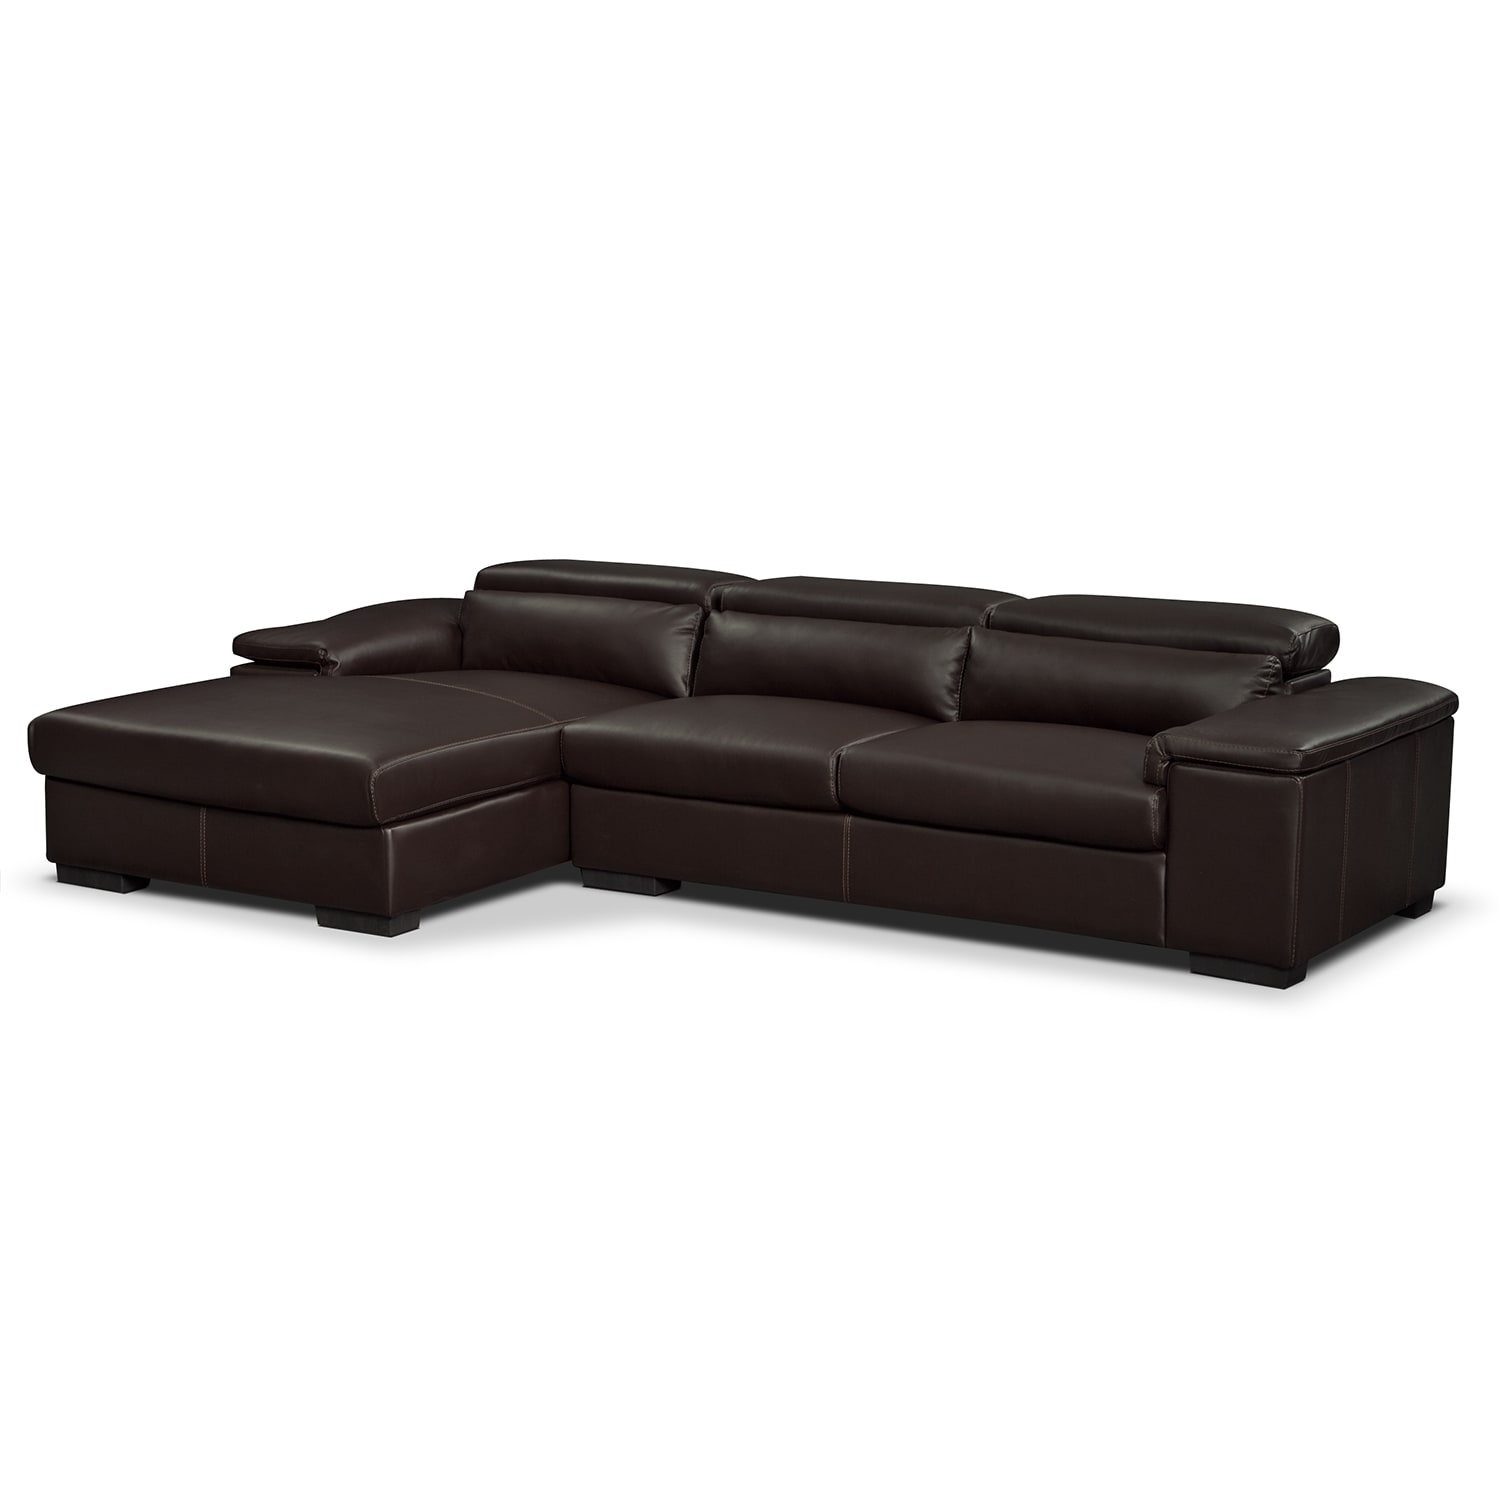 Living Room Furniture - Ventana II 2 Pc. Sectional (Reverse)